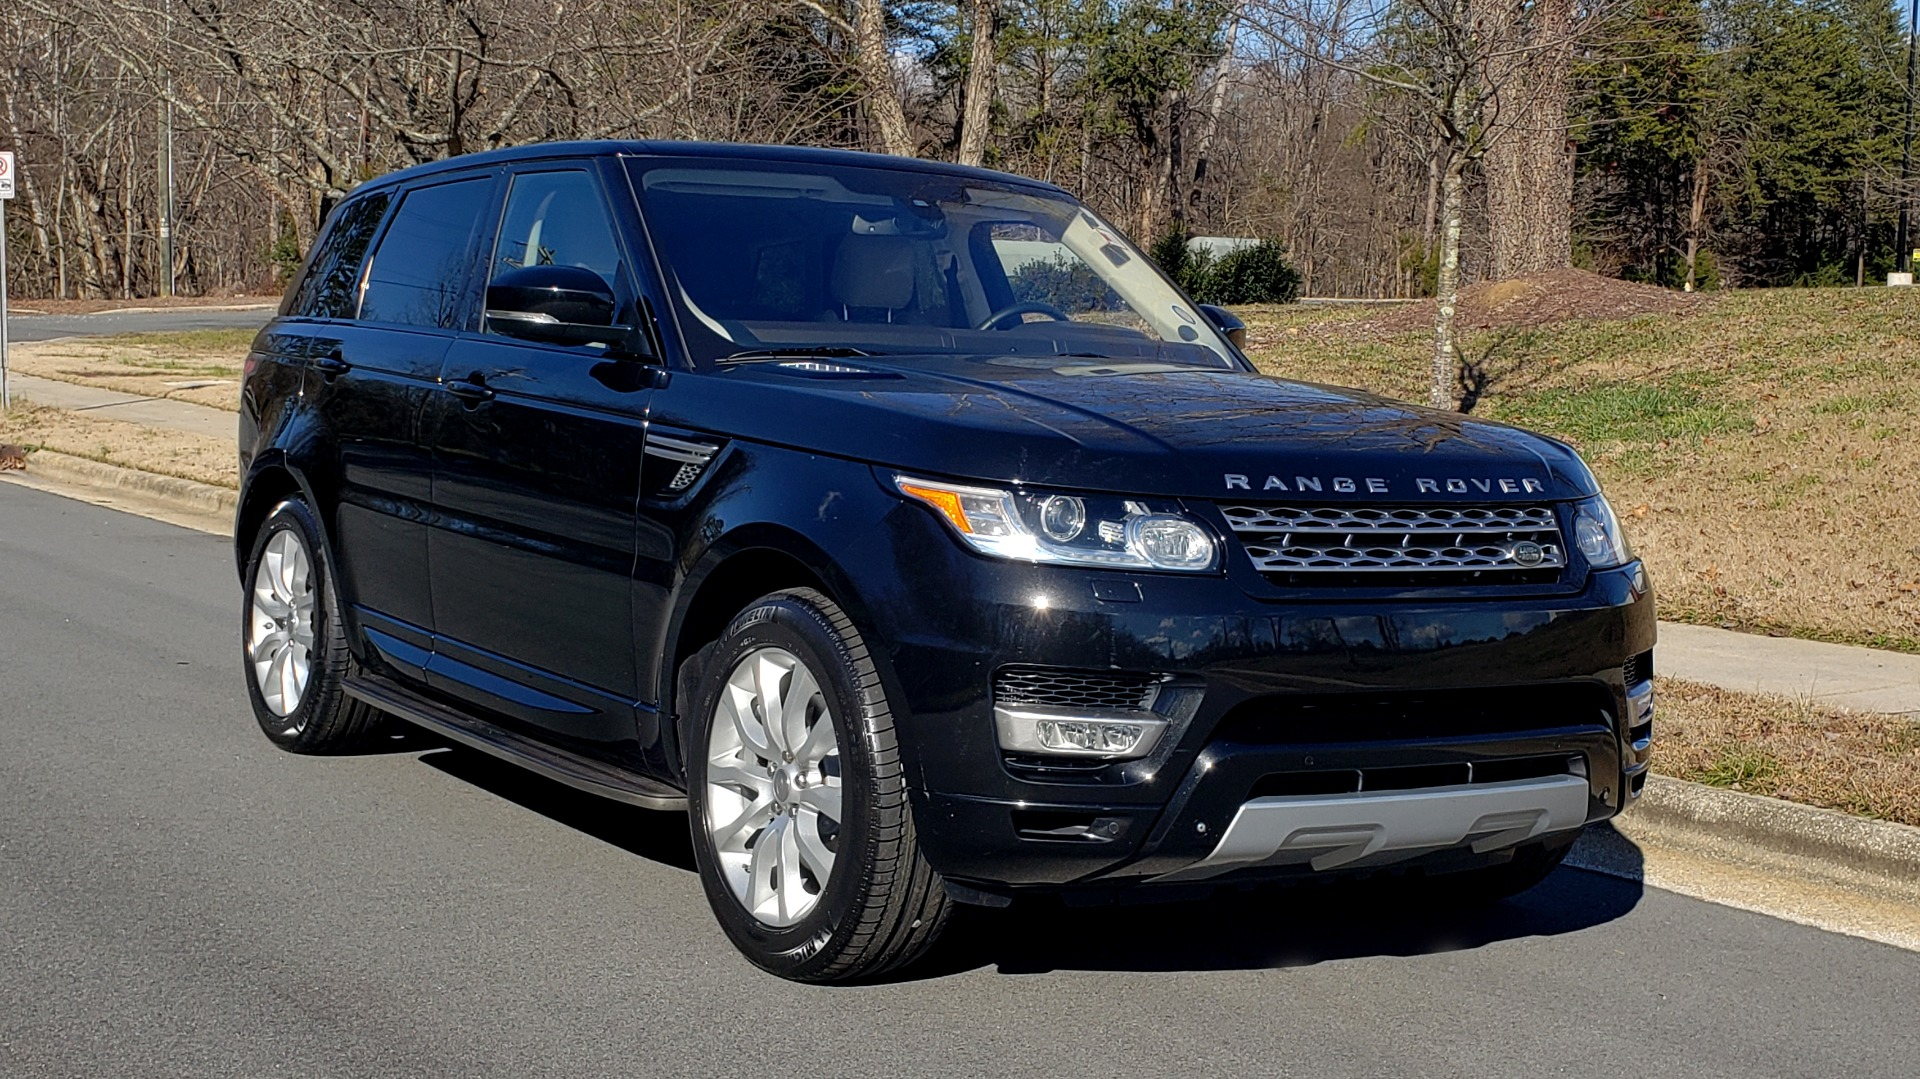 Used 2015 Land Rover RANGE ROVER HSE / 3.0L SC V6 / 8-SPD AUTO / NAV / PANO ROOF / REARVIEW for sale Sold at Formula Imports in Charlotte NC 28227 5